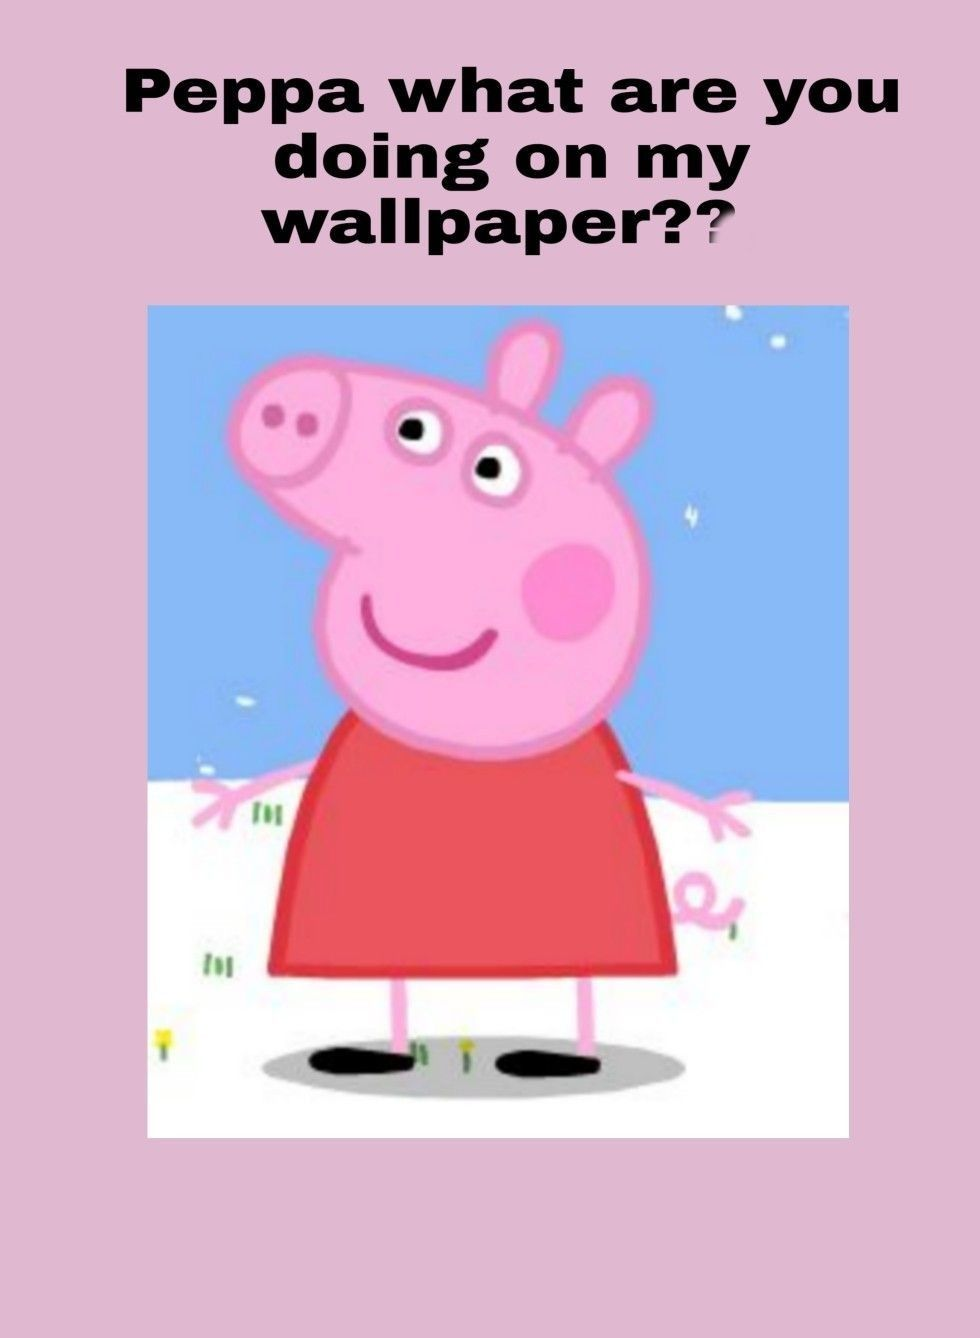 Peppa What Are You Doing On My Wallpaper Peppa Pig Wallpaper Pig Wallpaper Funny Iphone Wallpaper